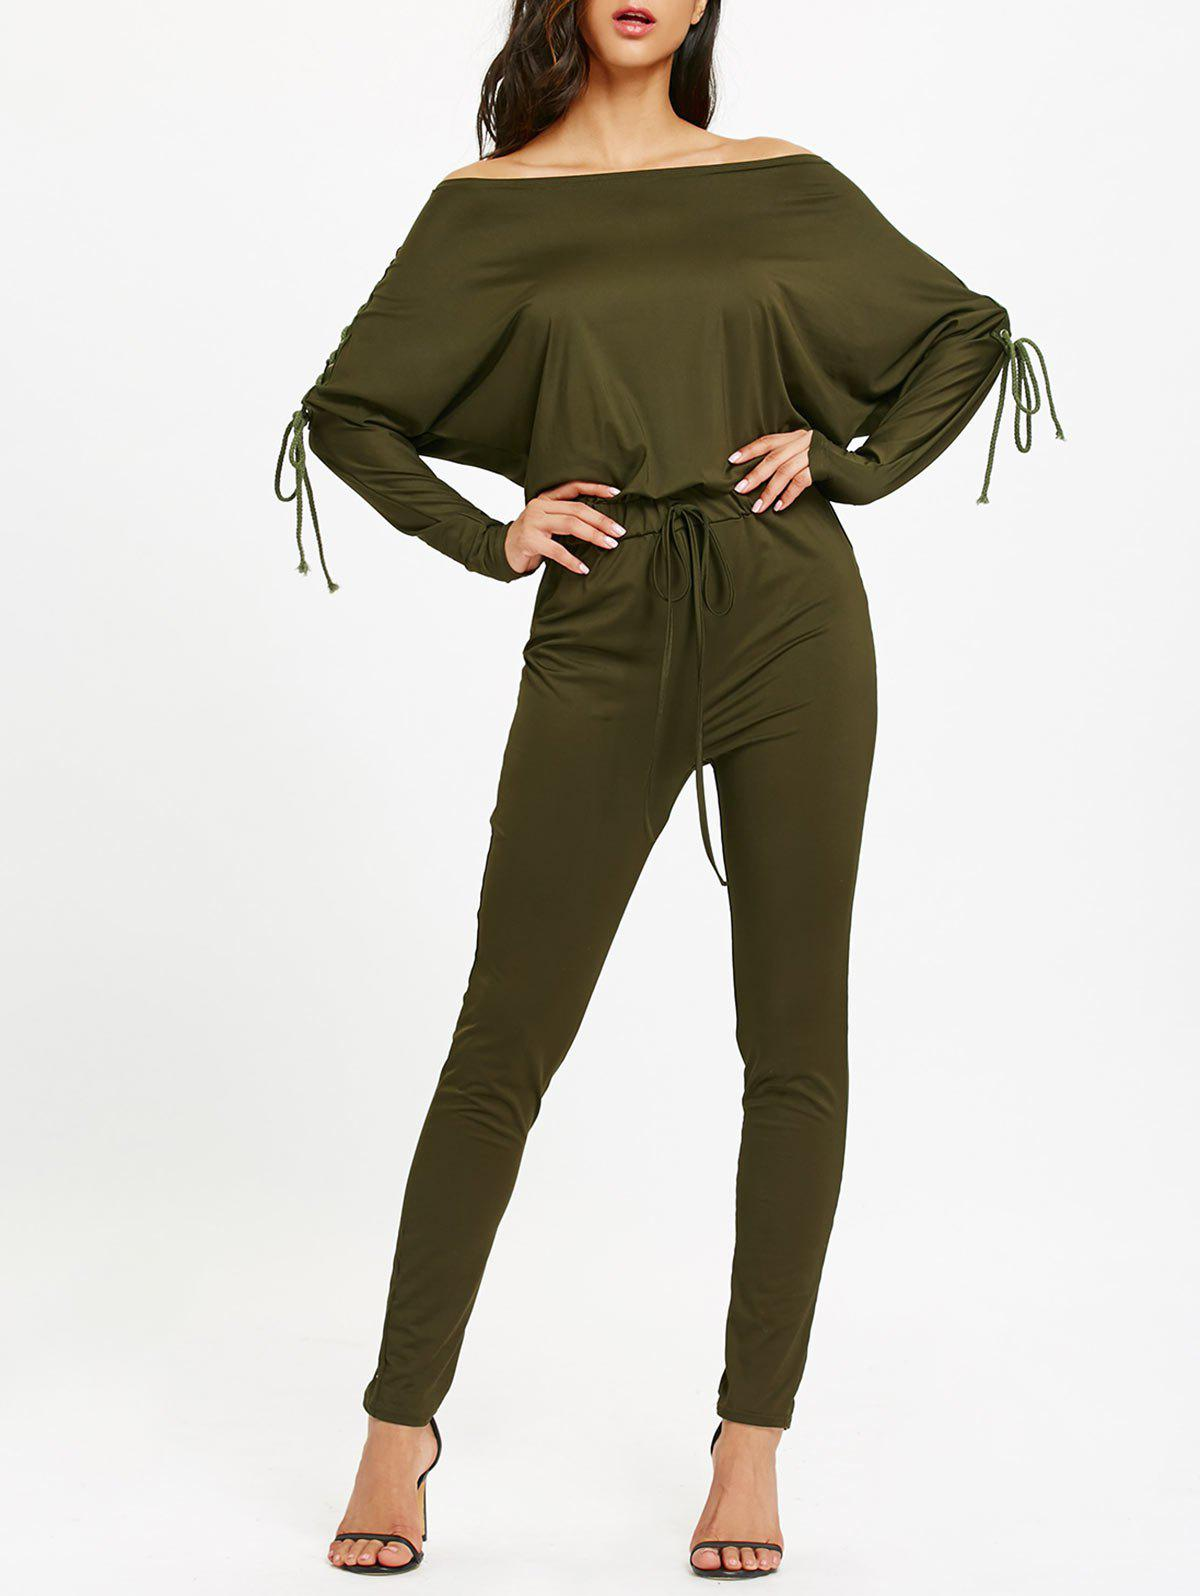 Lace Up Off The Shoulder High Waist JumpsuitWOMEN<br><br>Size: M; Color: ARMY GREEN; Material: Polyester; Fit Type: Skinny; Pattern Type: Solid; Embellishment: Criss-Cross; Style: Fashion; Season: Fall,Spring,Winter; With Belt: No; Weight: 0.5100kg; Package Contents: 1 x Jumpsuit;